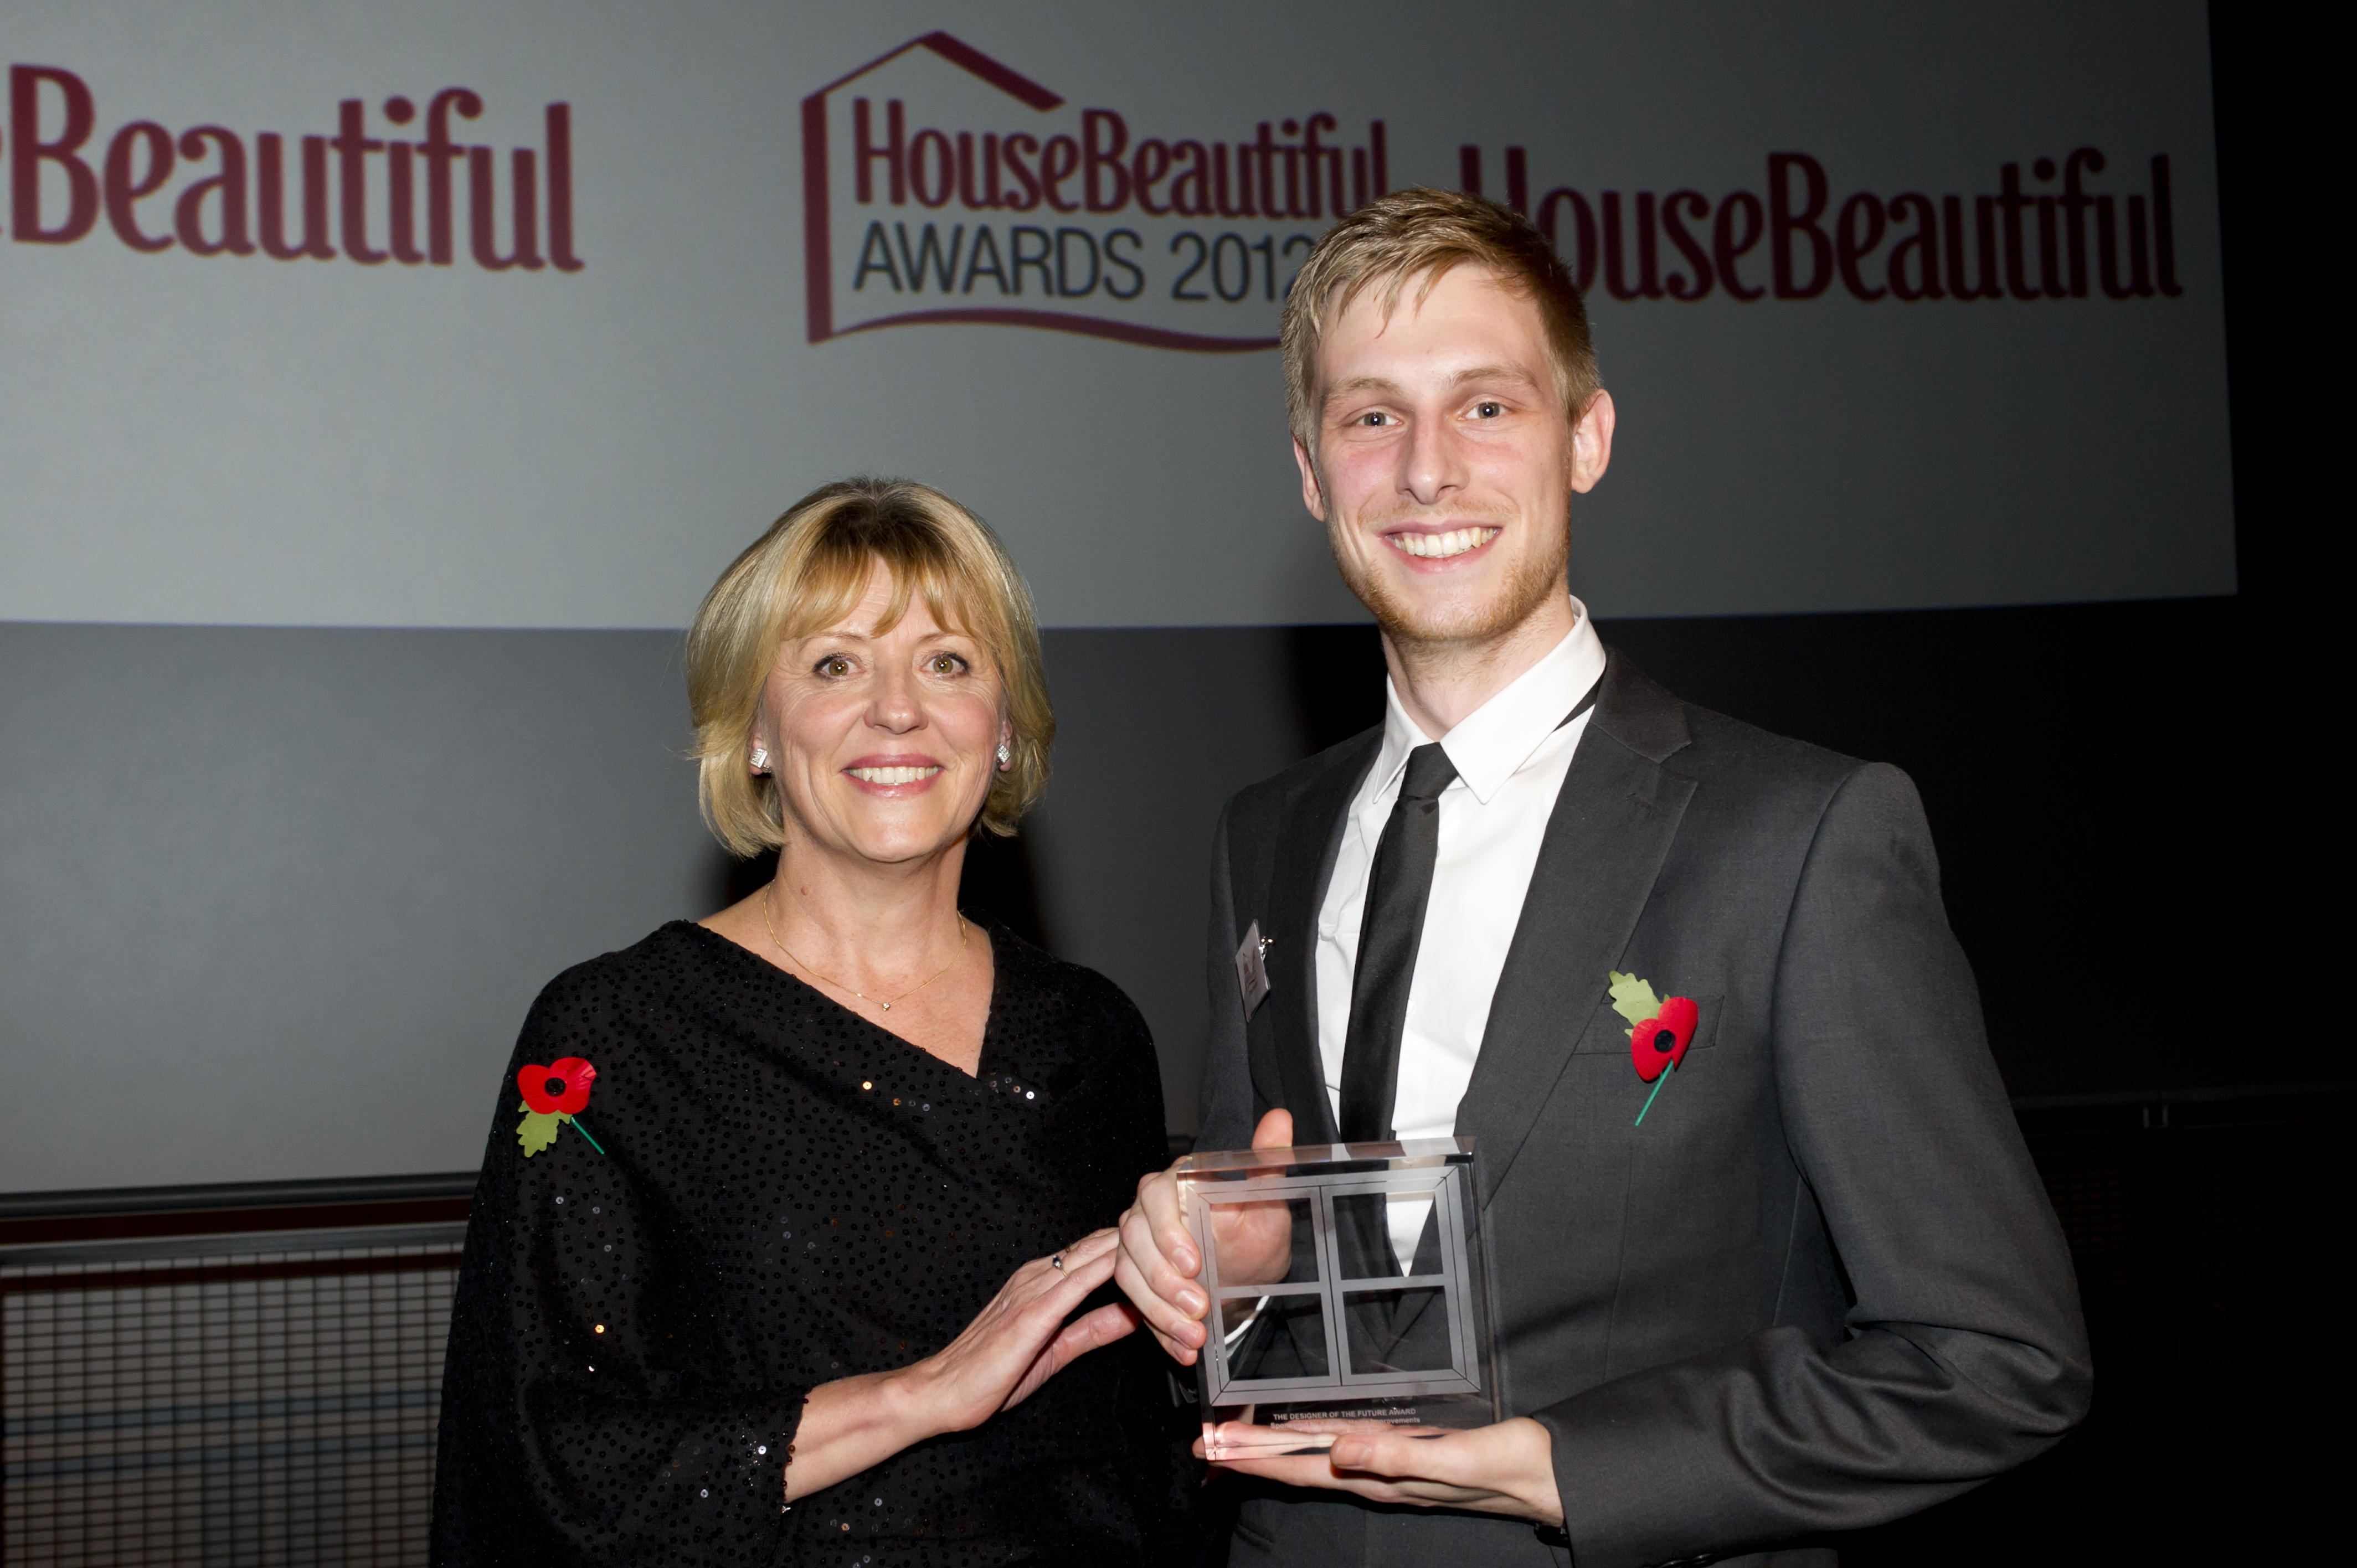 Oliver Hrubiak Named As Designer Of The Future At House Beautiful Awards